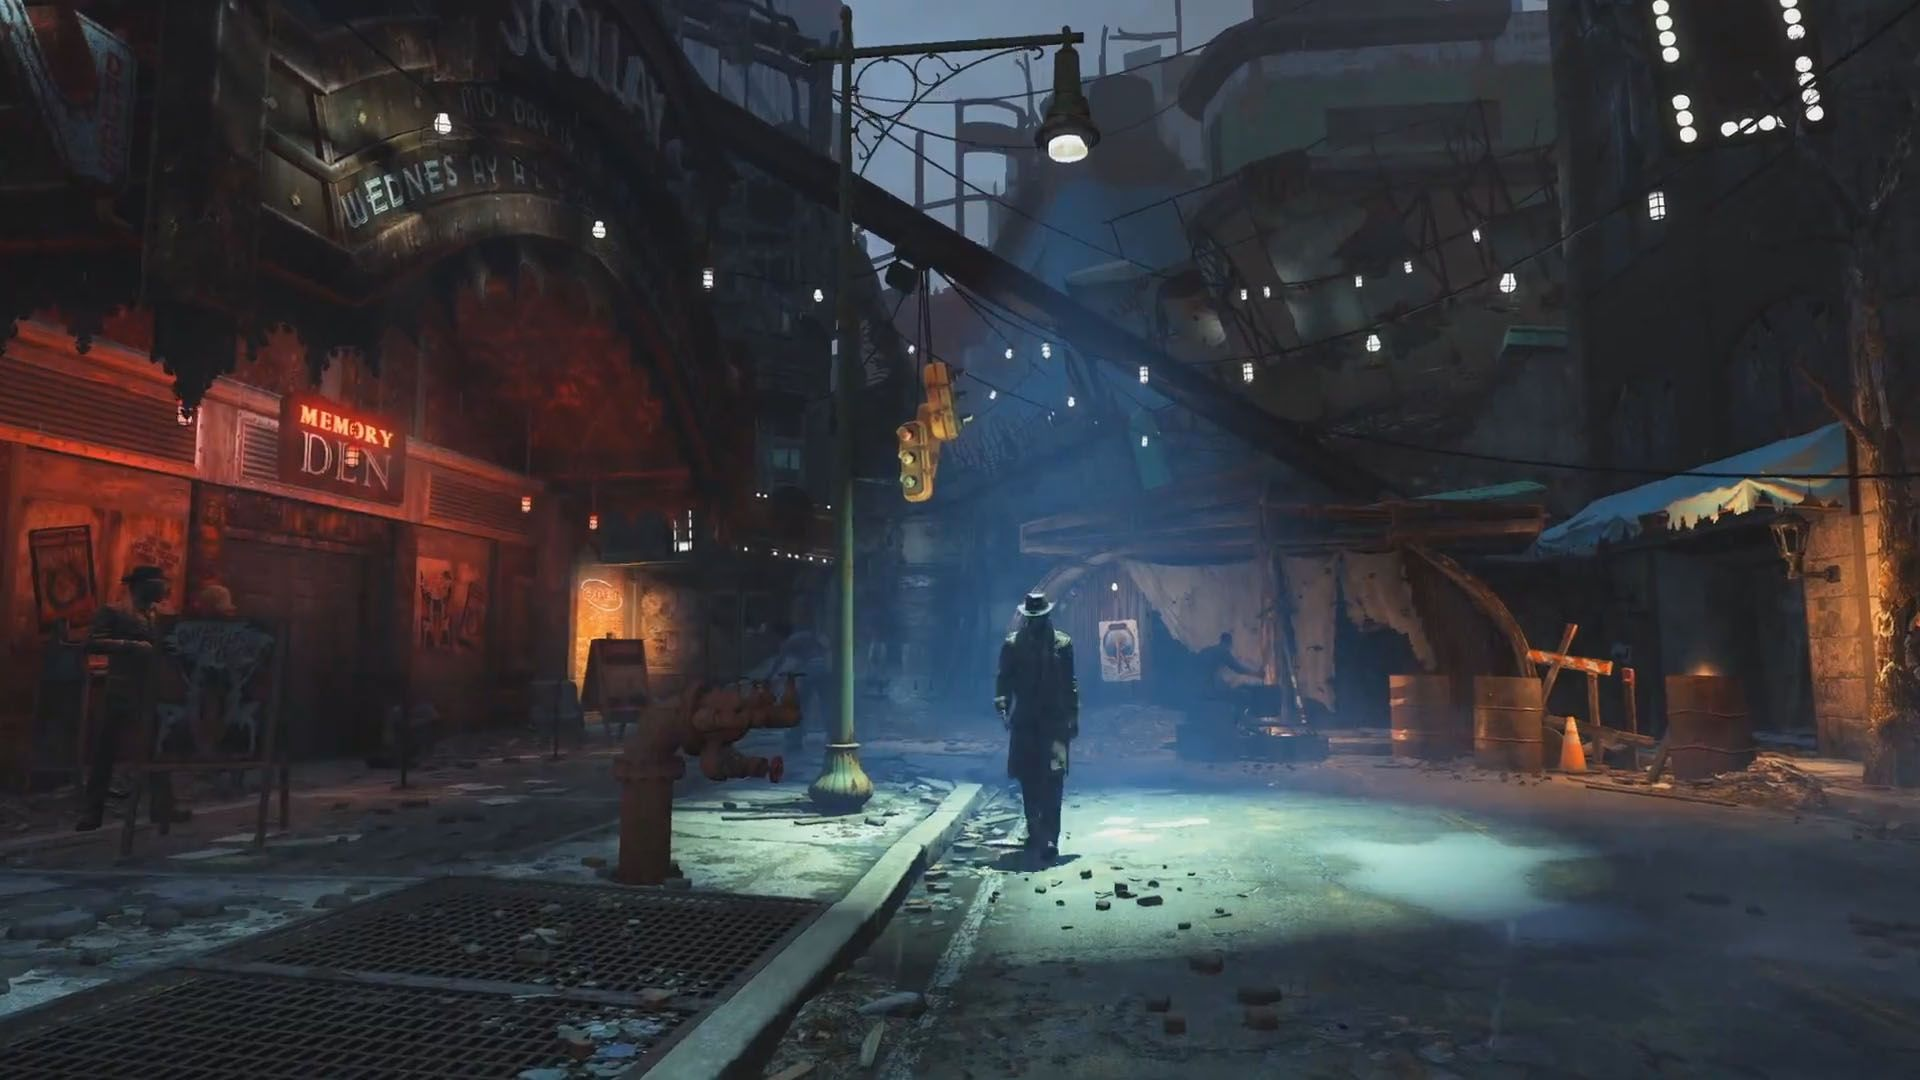 fallout 4 diamond city   Google Search Lab Fallout 4 1920x1080